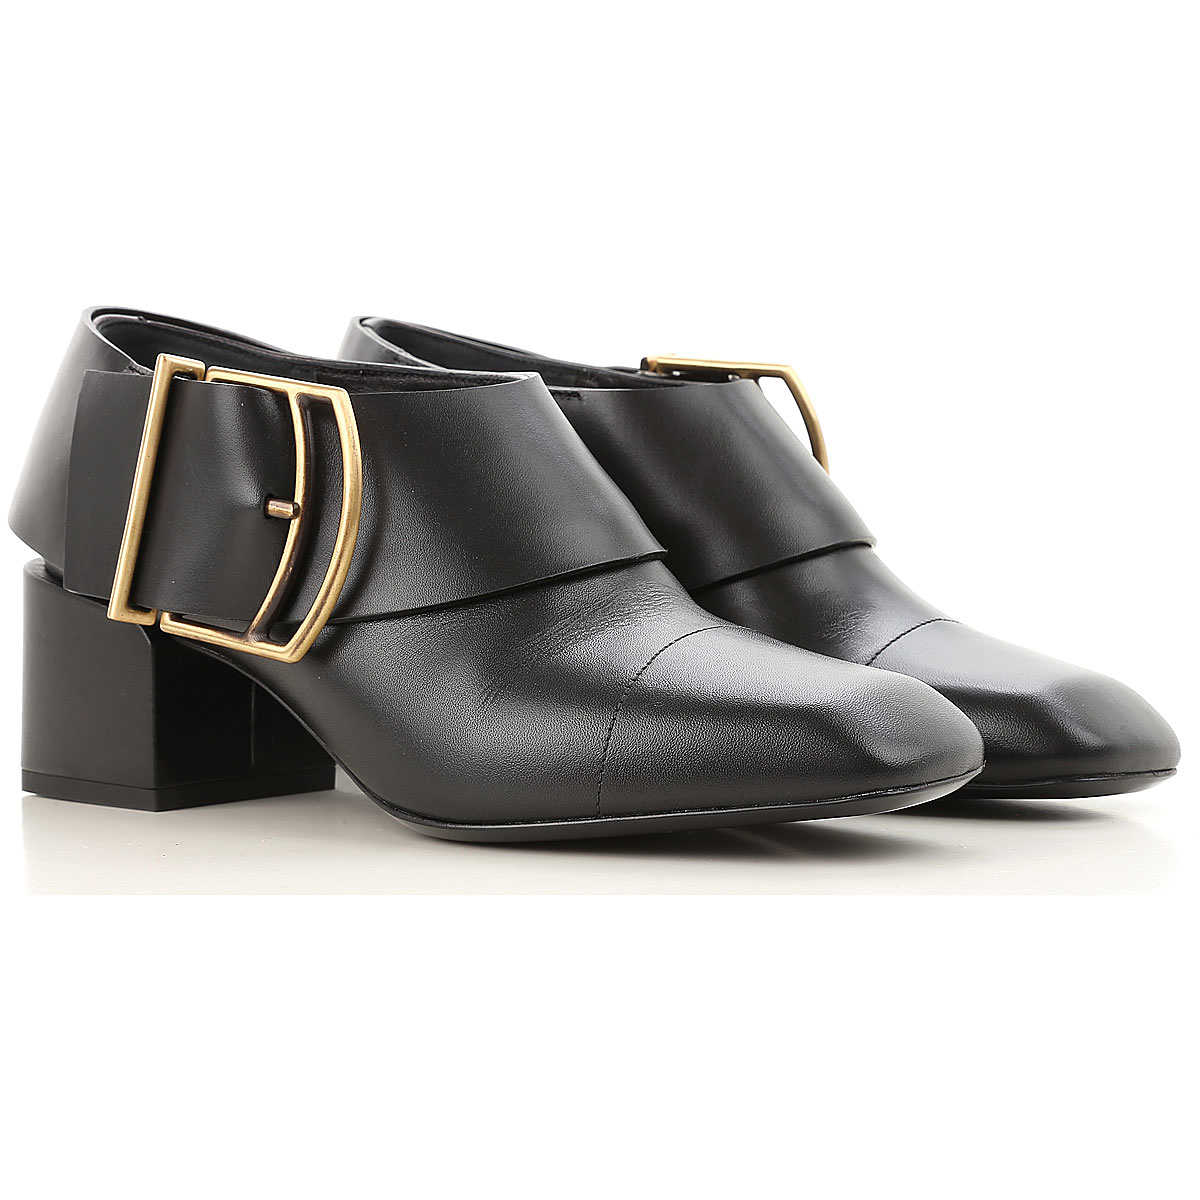 Jil Sander Boots for Women Booties On Sale in Outlet - GOOFASH